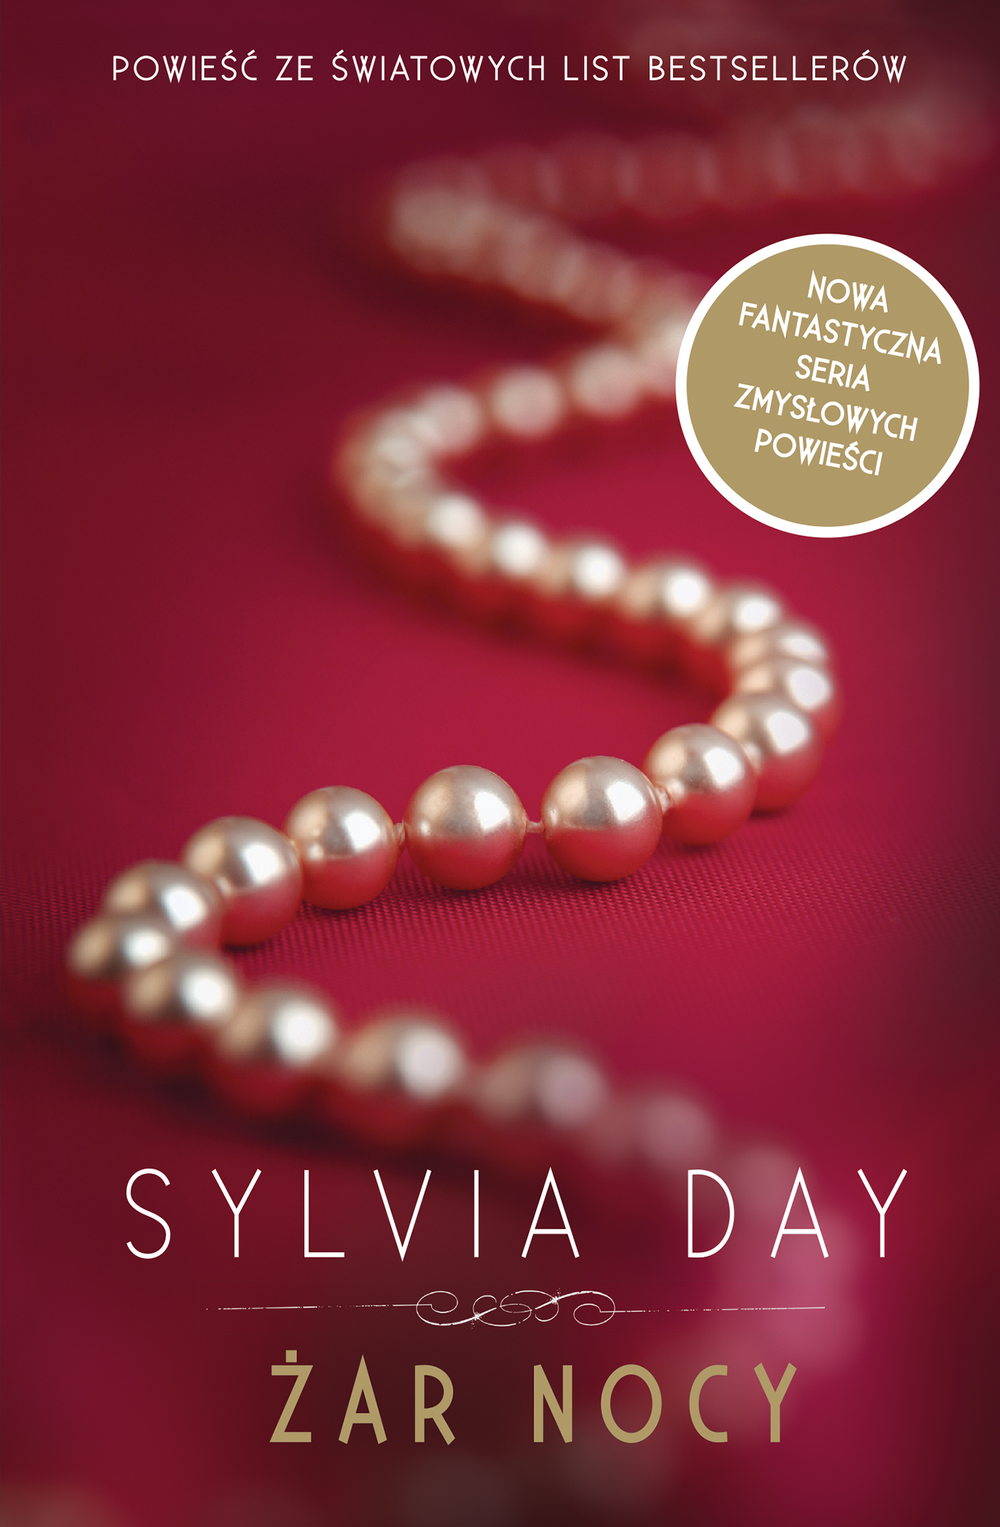 Żar nocy pocket - SYLVIA DAY